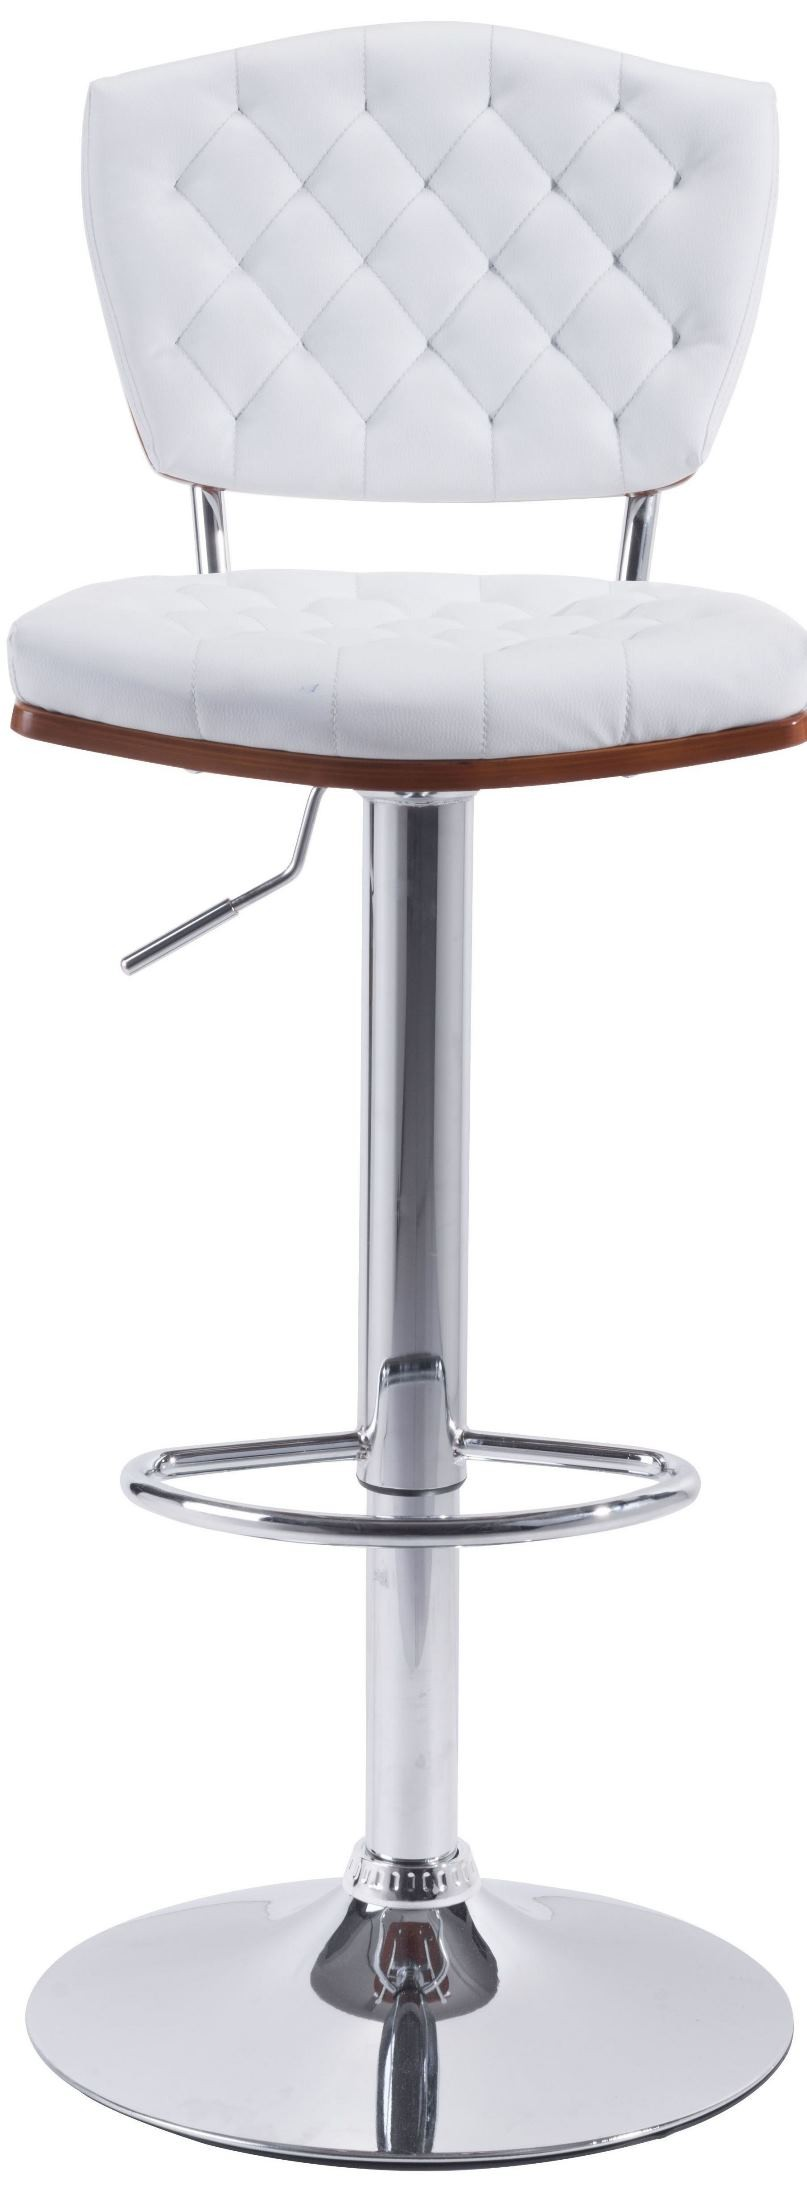 Tiger White Bar Chair From Zuo Mod 100316 Coleman Furniture